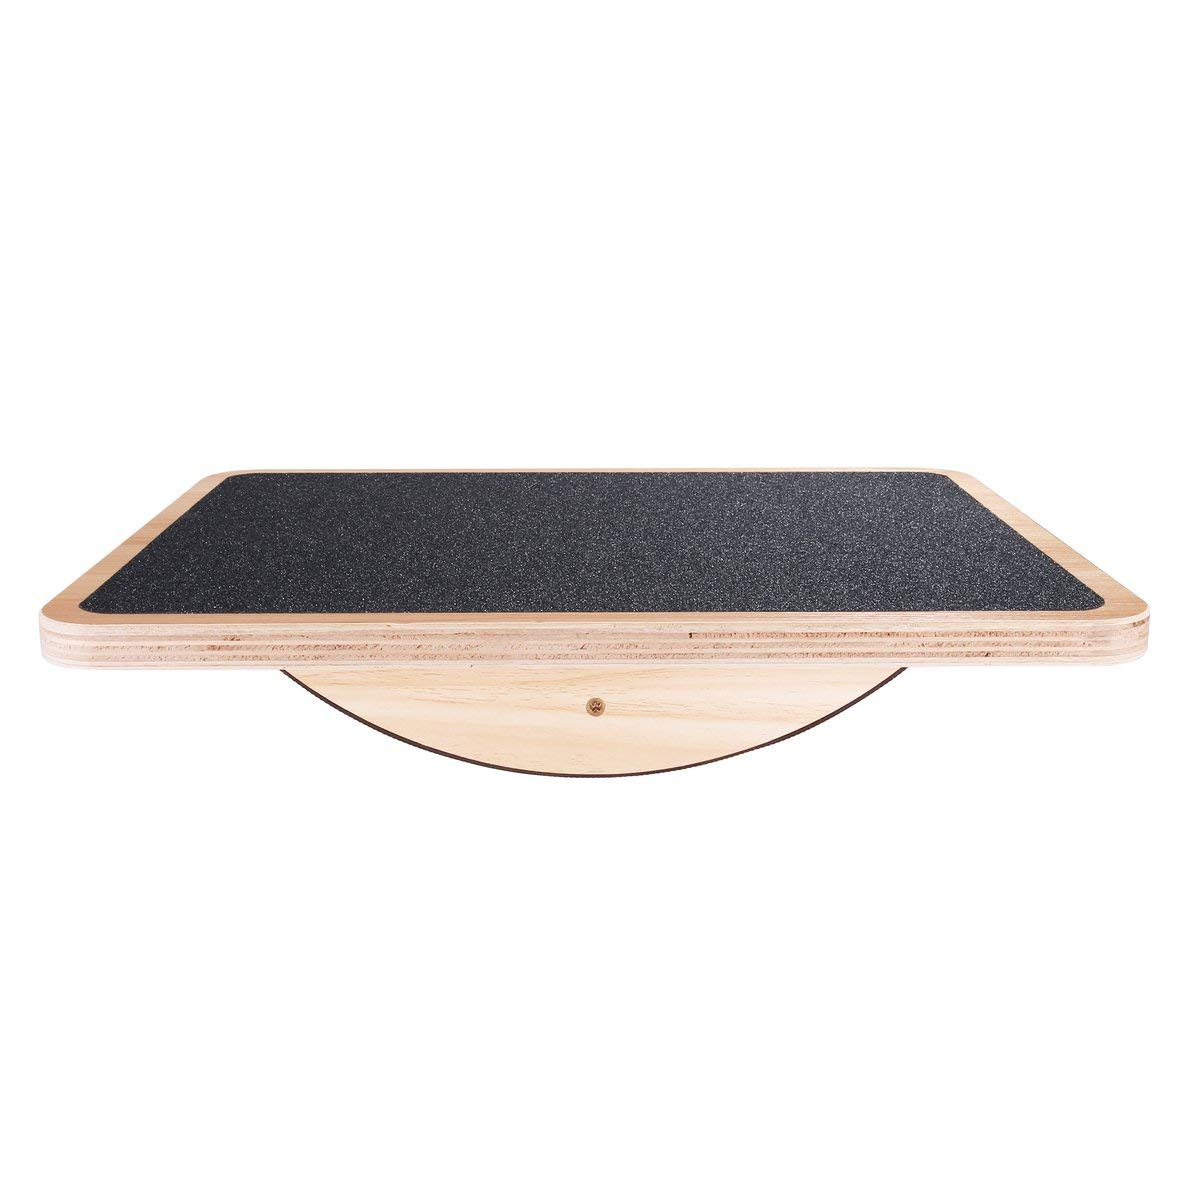 Balance Board Physio: Australian Physiotherapy Equipment